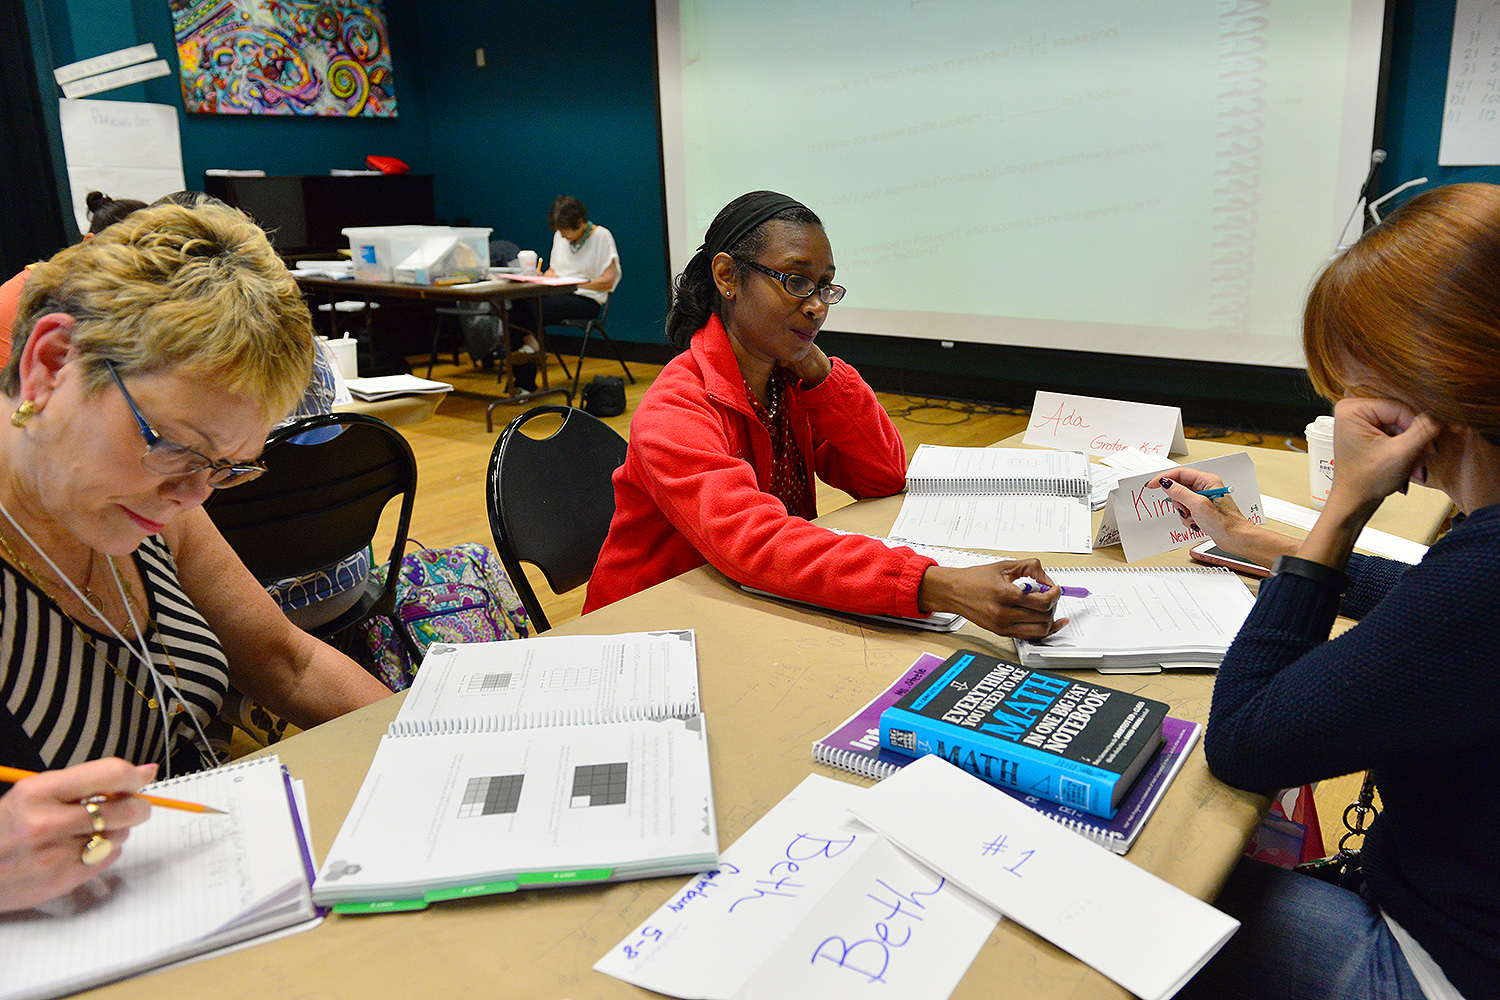 Intel Math is an intensive, 80-hour, content-based course that helps local teachers deepen their own understanding of K-8 math content and connections between concepts.